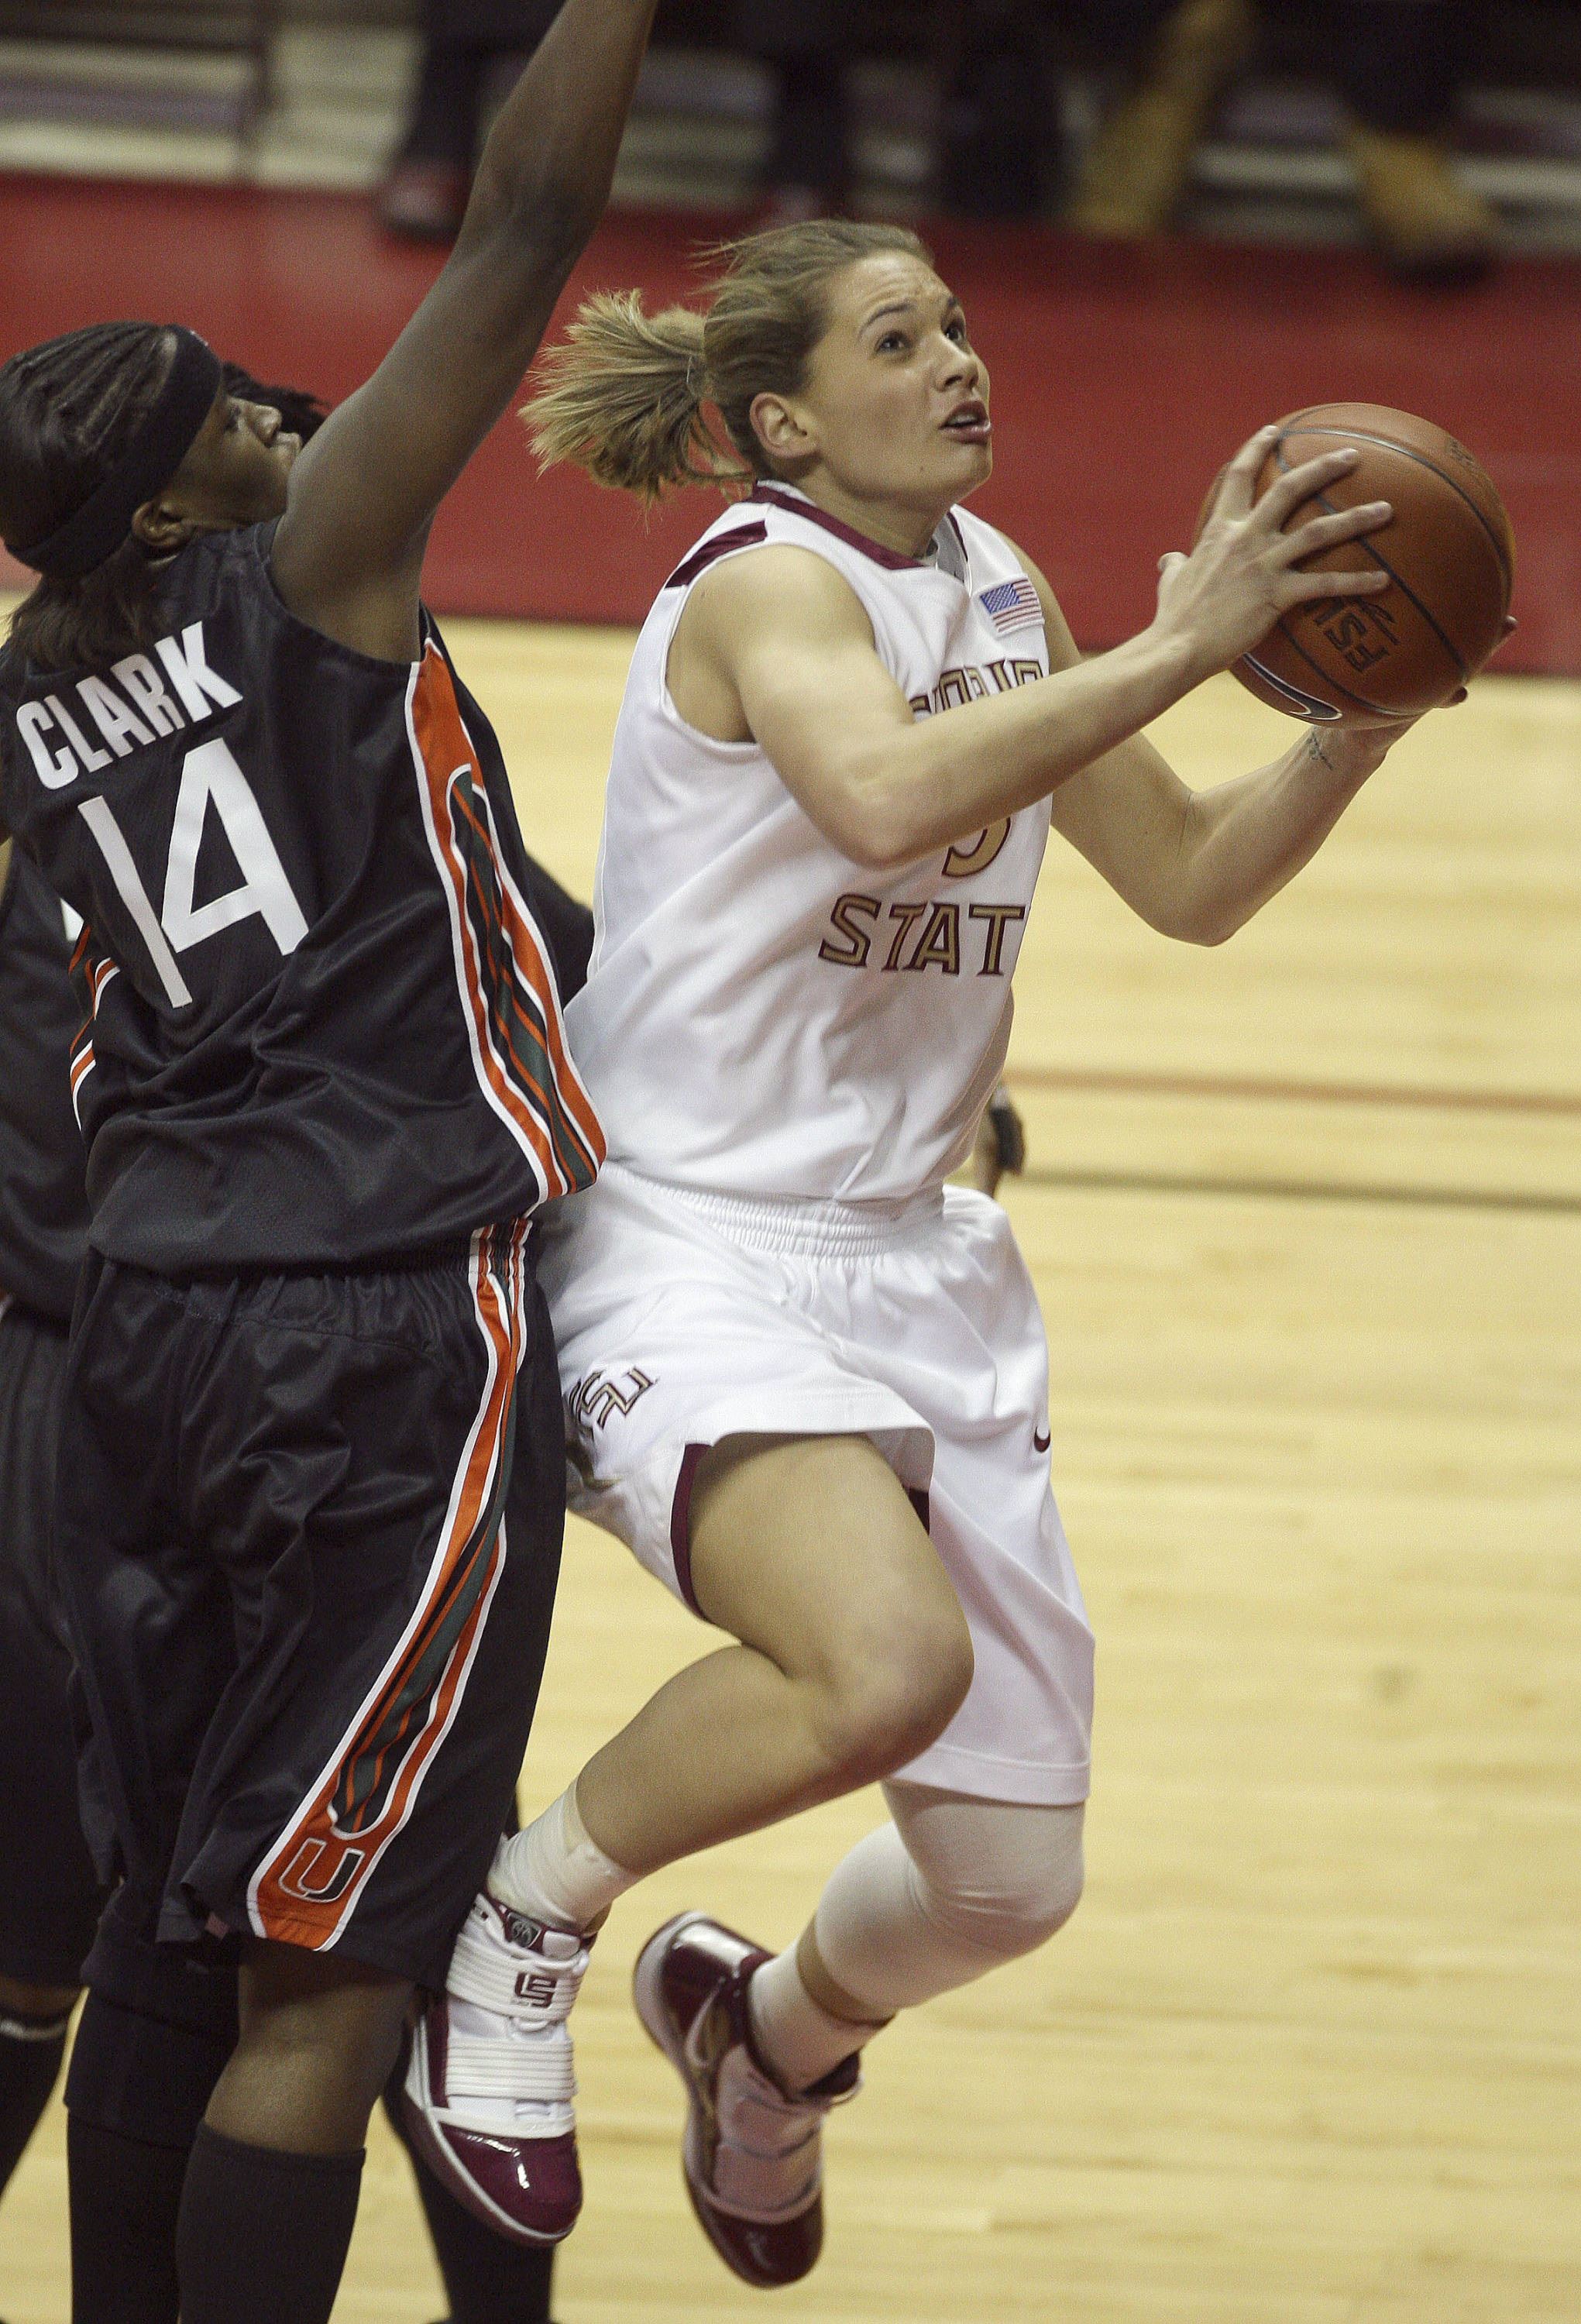 Florida State's Alexa Deluzio, right, drives to the basket as Miami's Charmaine Clark defends during an NCAA college basketball game Thursday, Feb. 25, 2010, in Tallahassee, Fla. (AP Photo/Phil Coale)